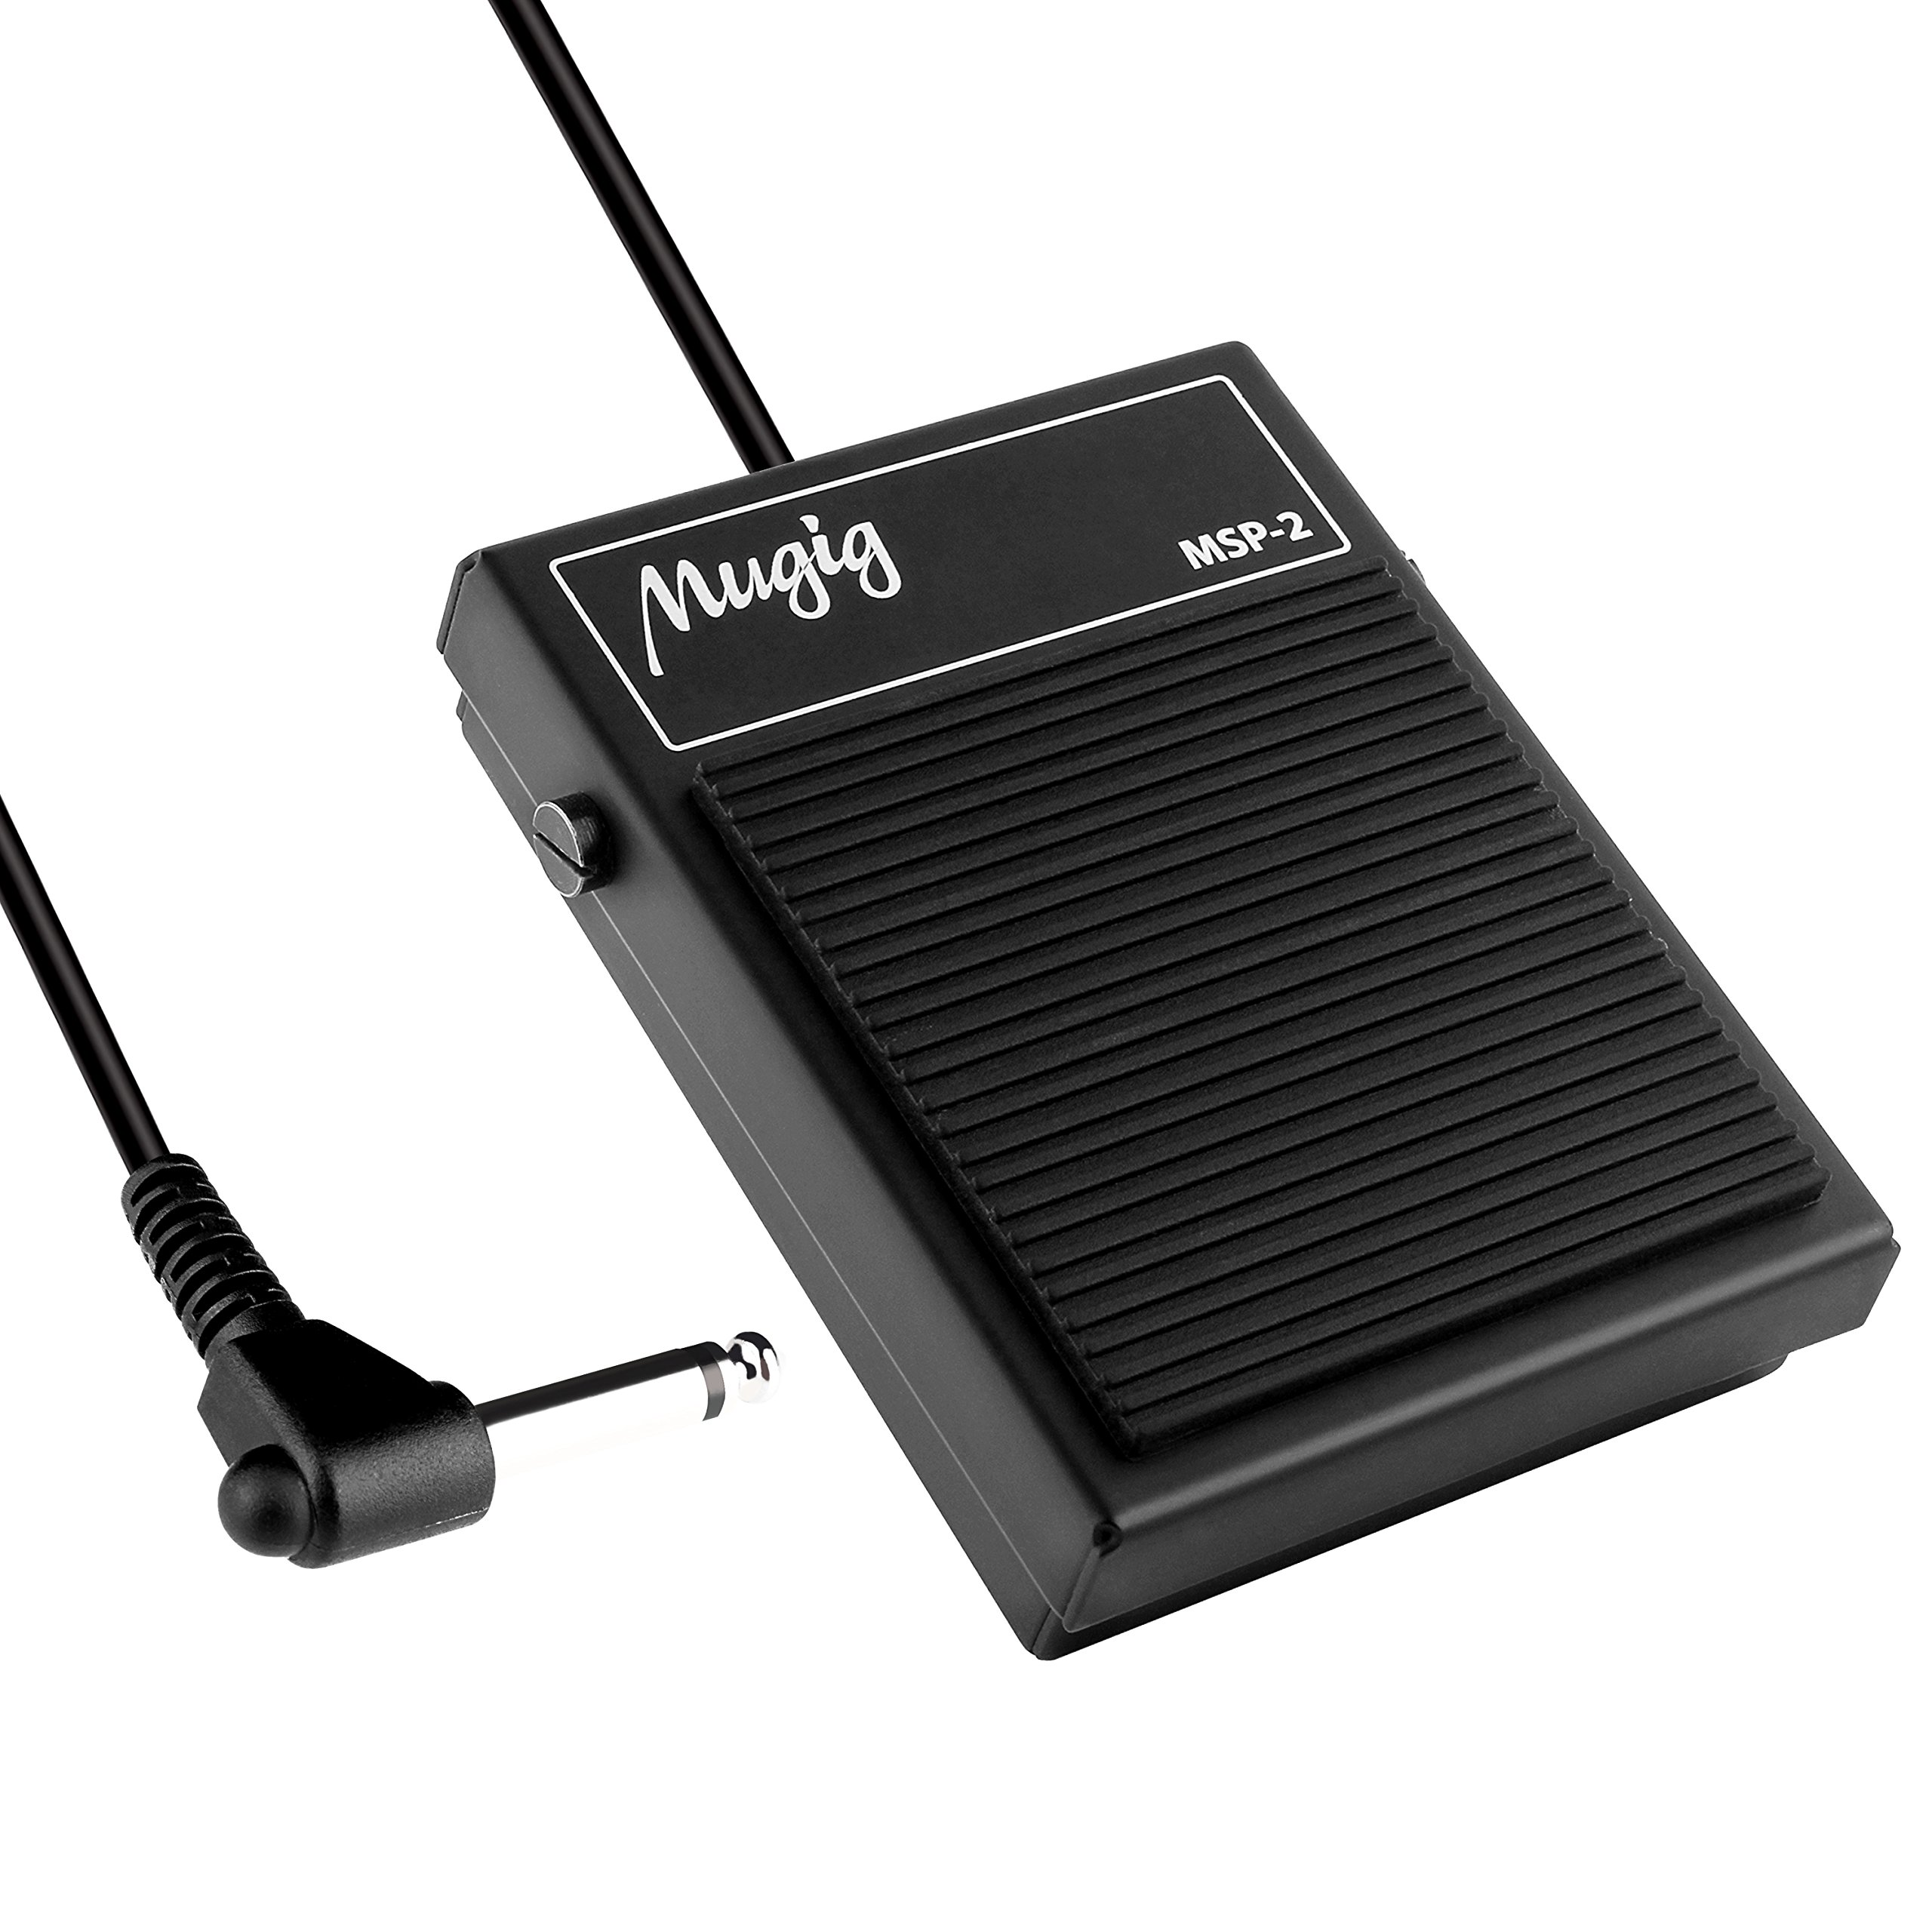 Mugig Sustain Pedal MSP-2,Universal Foot Pedal for Keyboard Digital Piano Foot Pedal